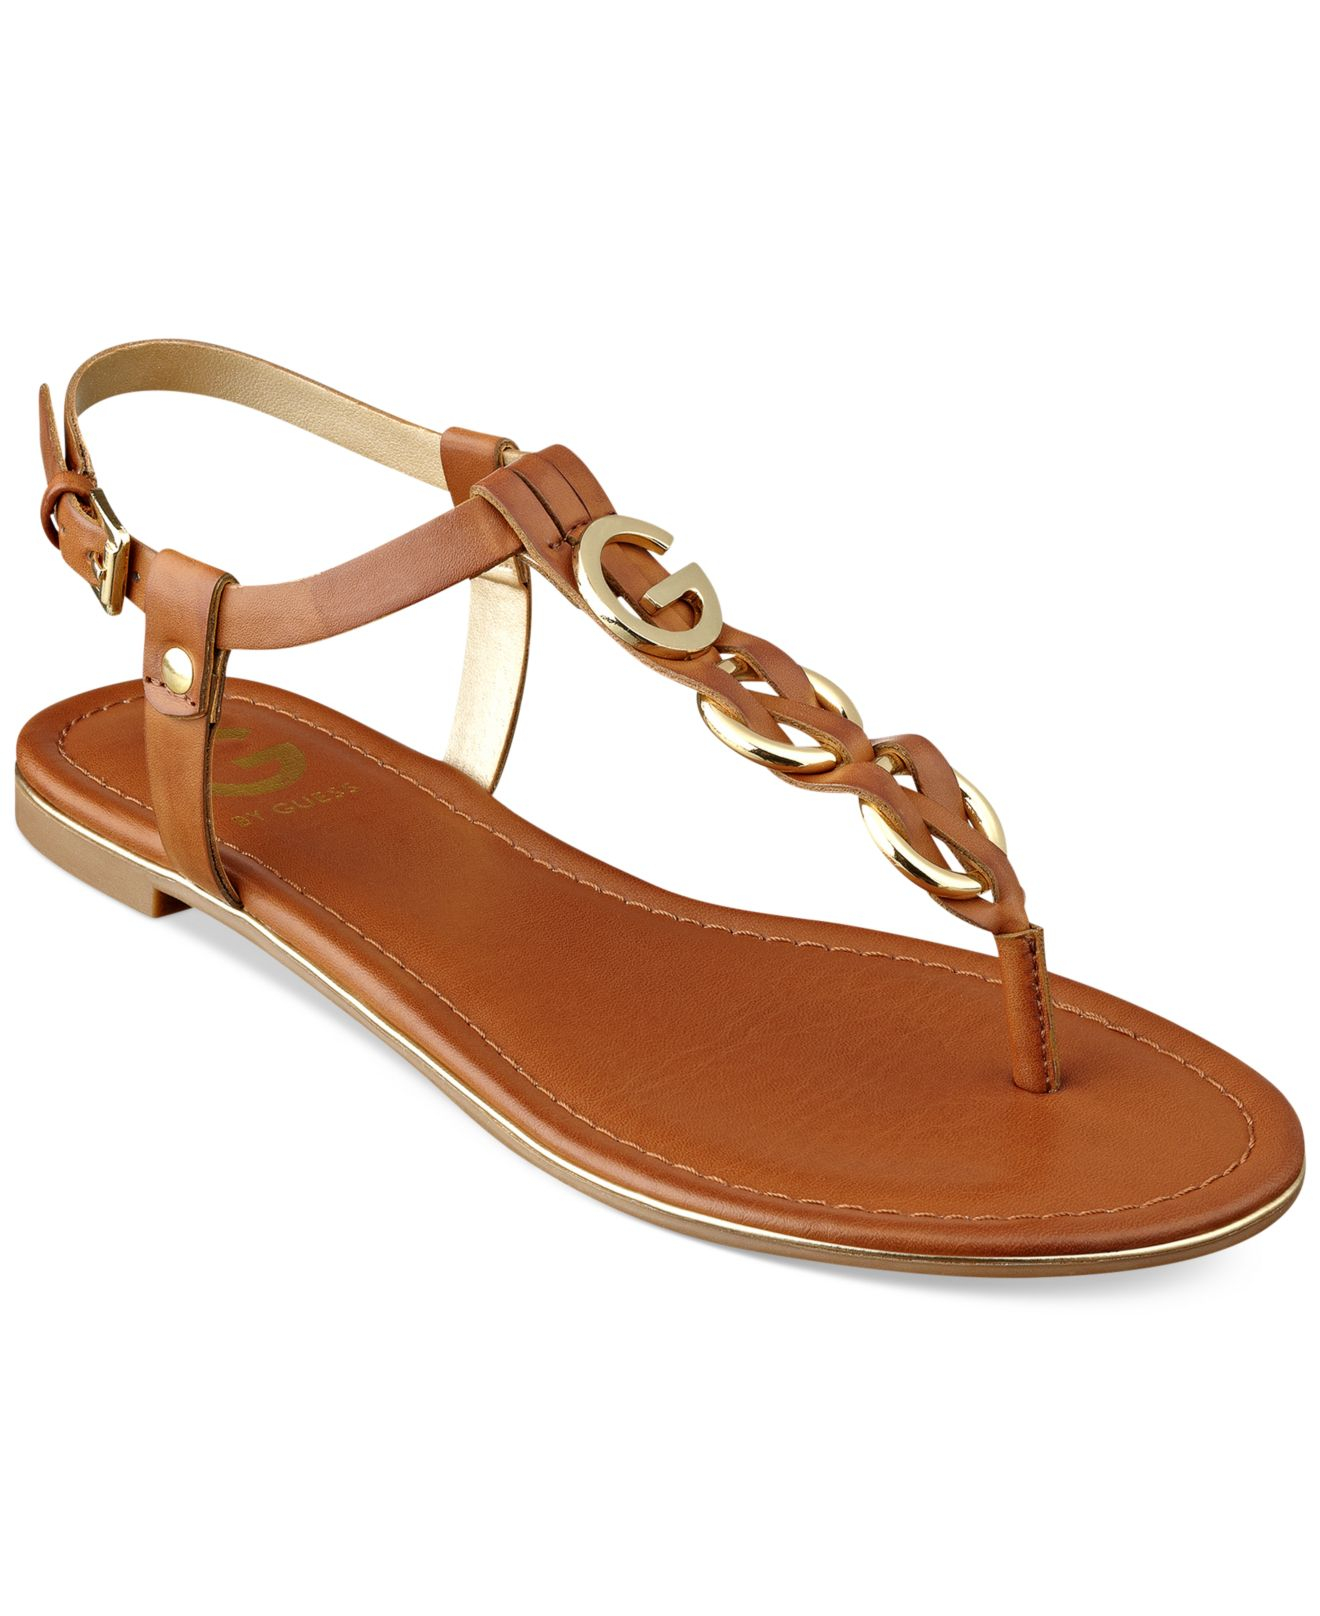 89b4e40c00023 Lyst - G by Guess Women S Dahlia Braided T-Strap Flat Sandals in Brown